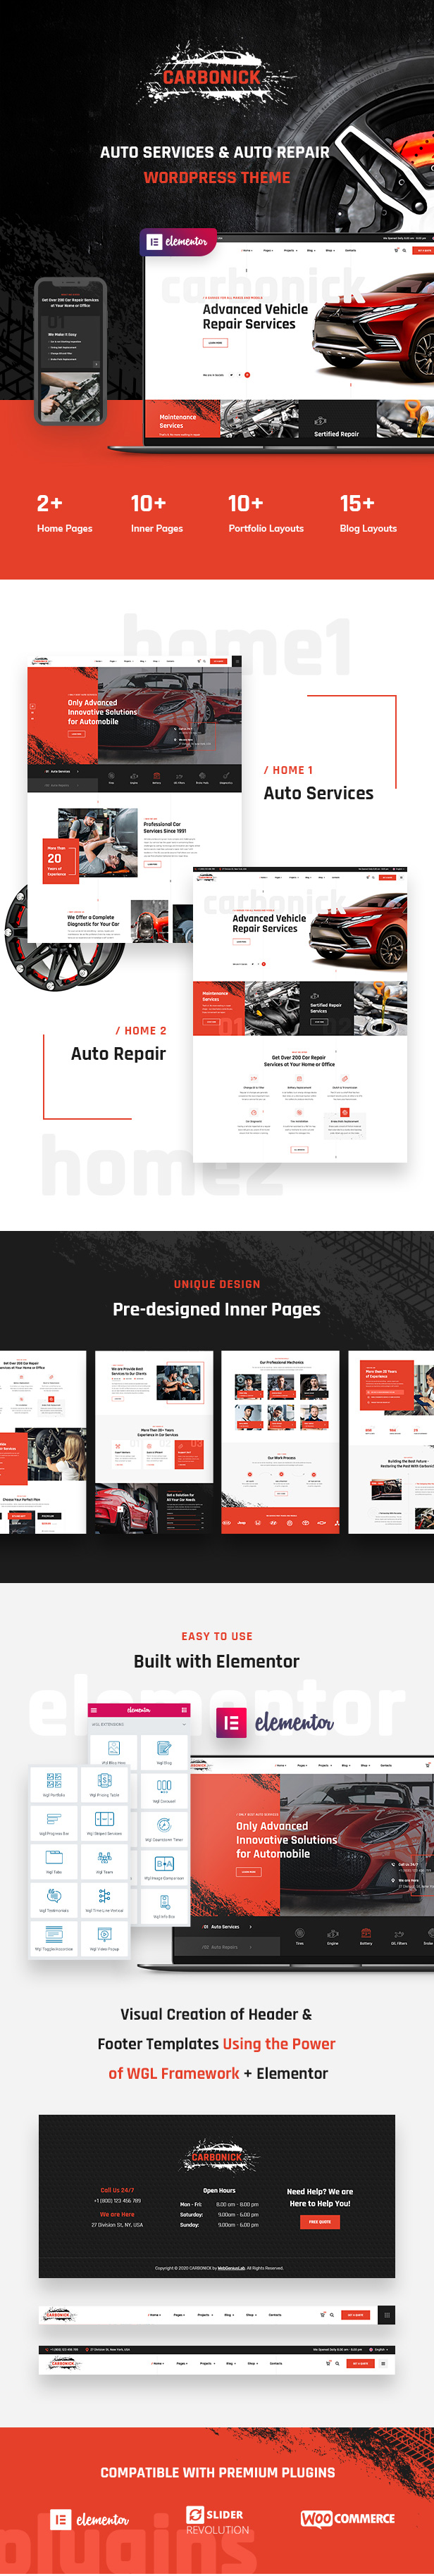 Carbonick - Auto Services & Repair WordPress Theme - 1